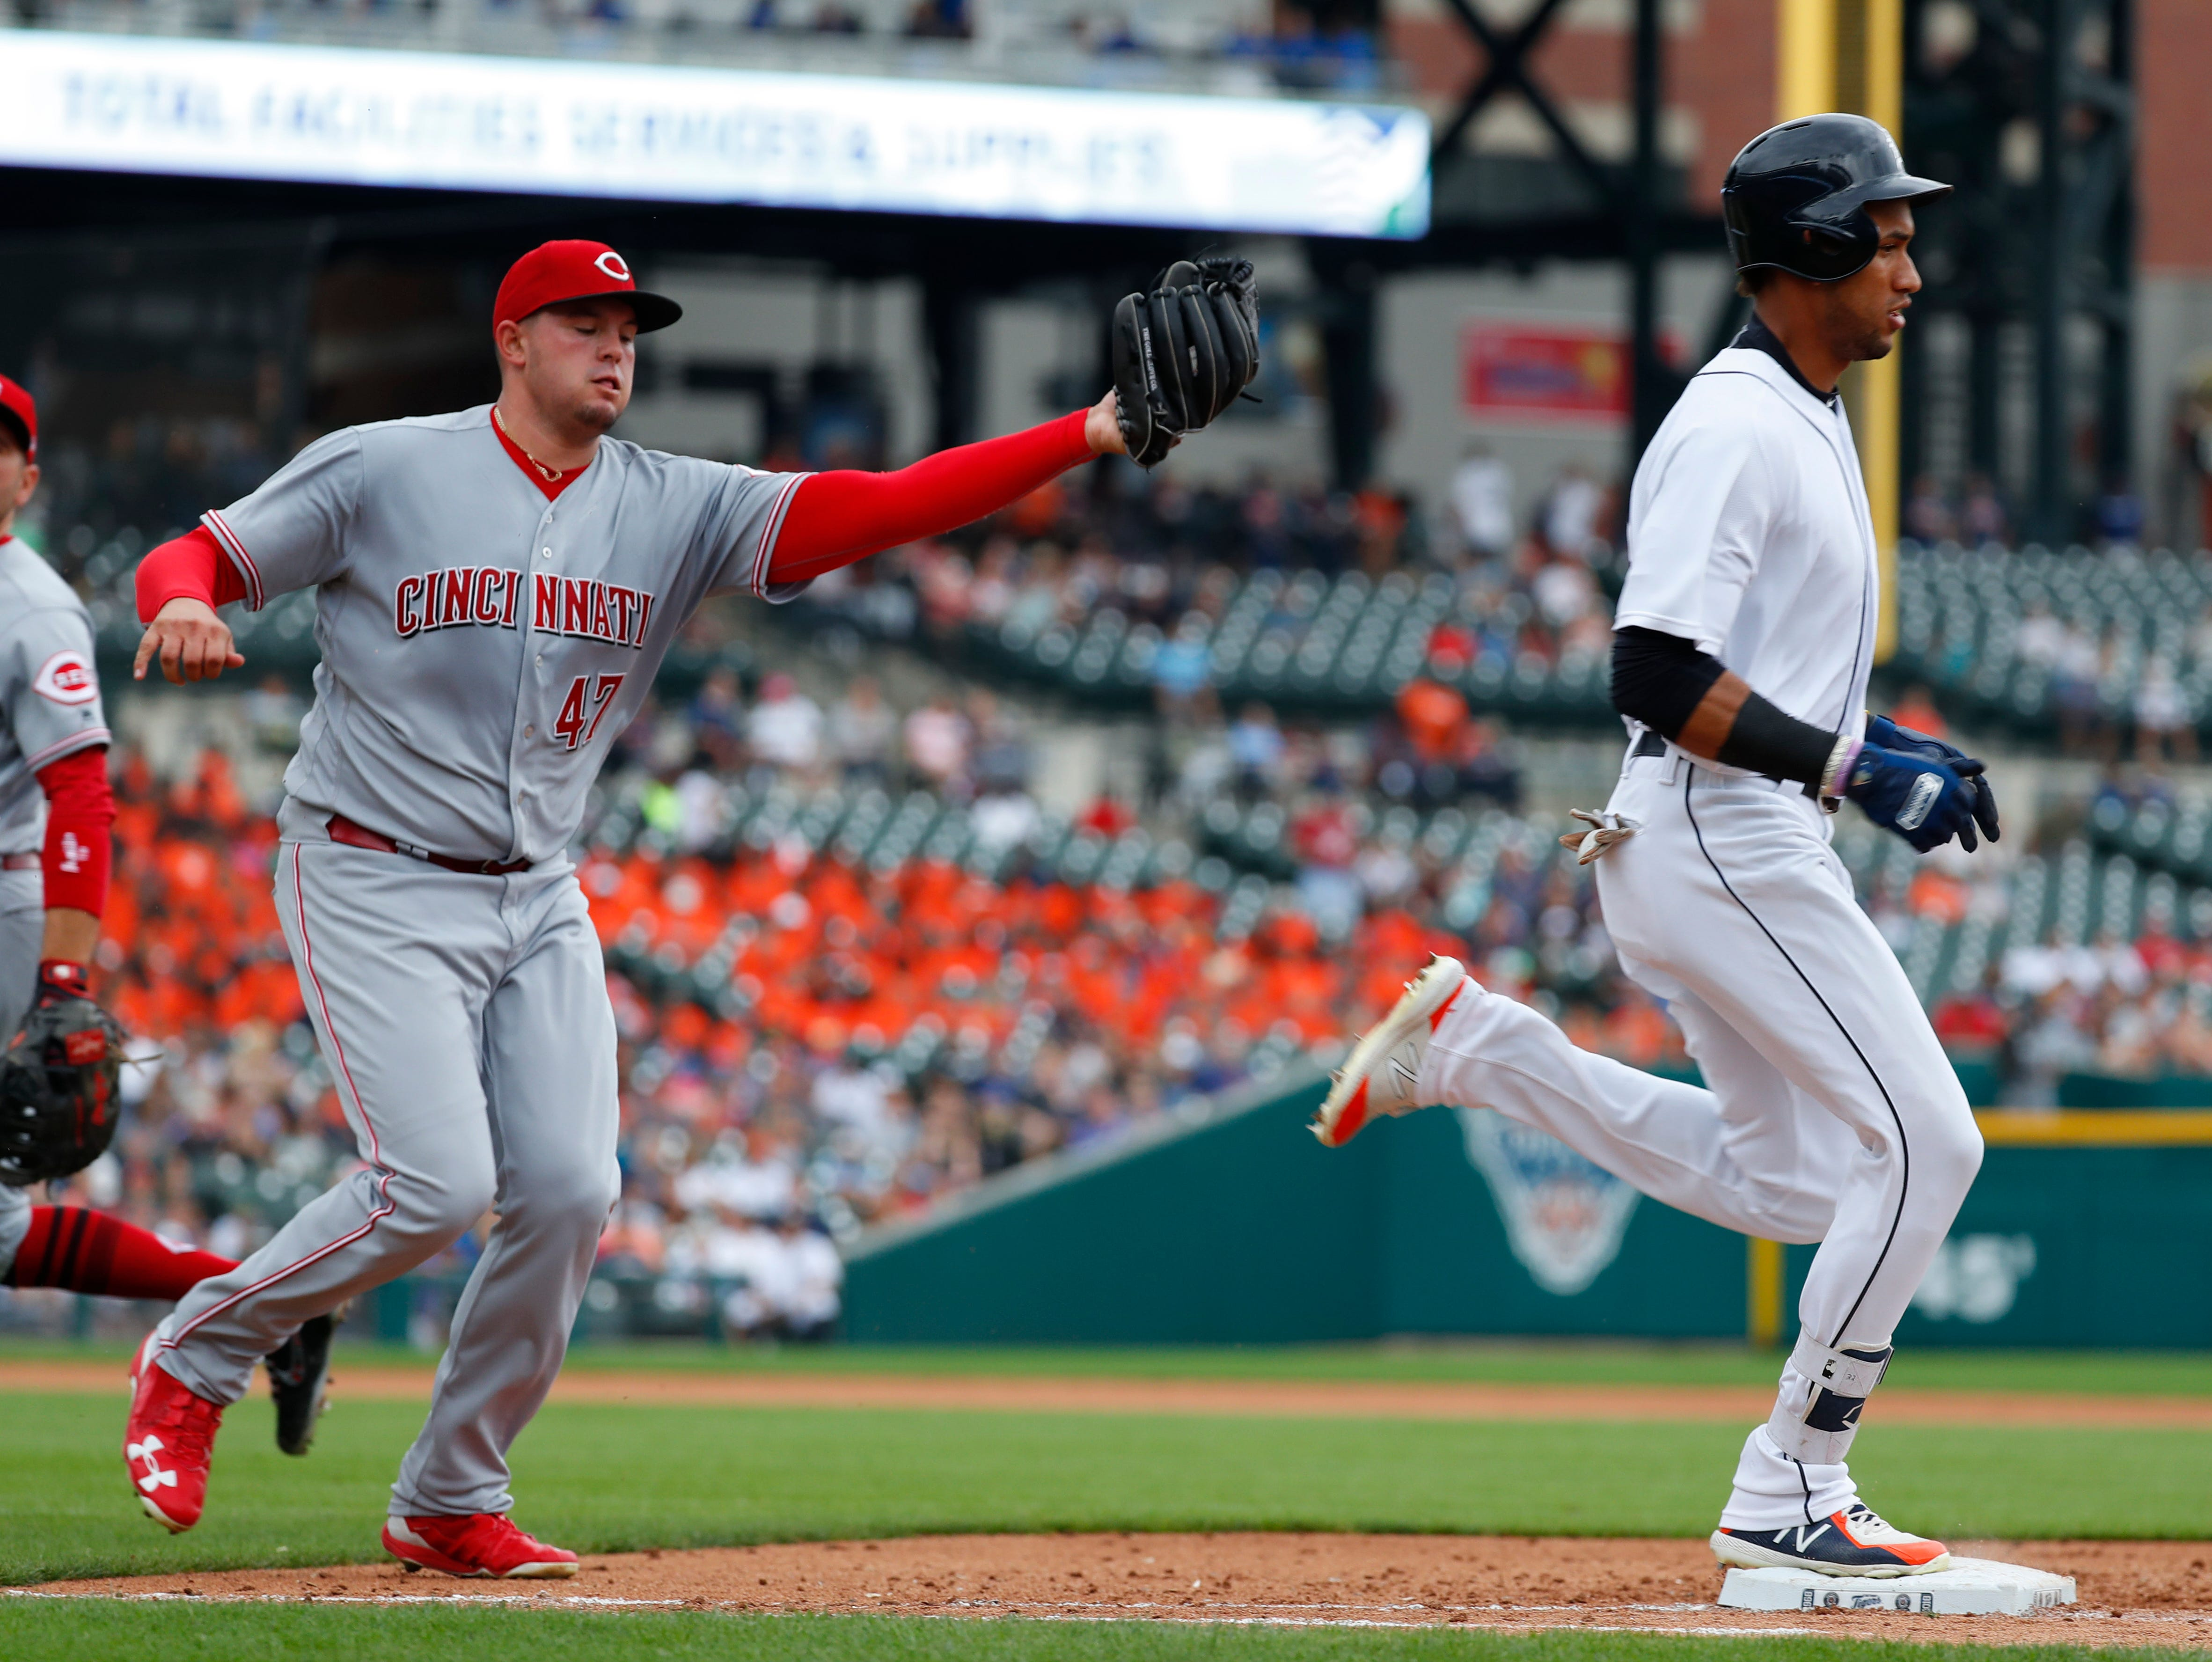 The Tigers' Victor Reyes beats Cincinnati Reds pitcher Sal Romano to first base on a bunt in the fourth inning.